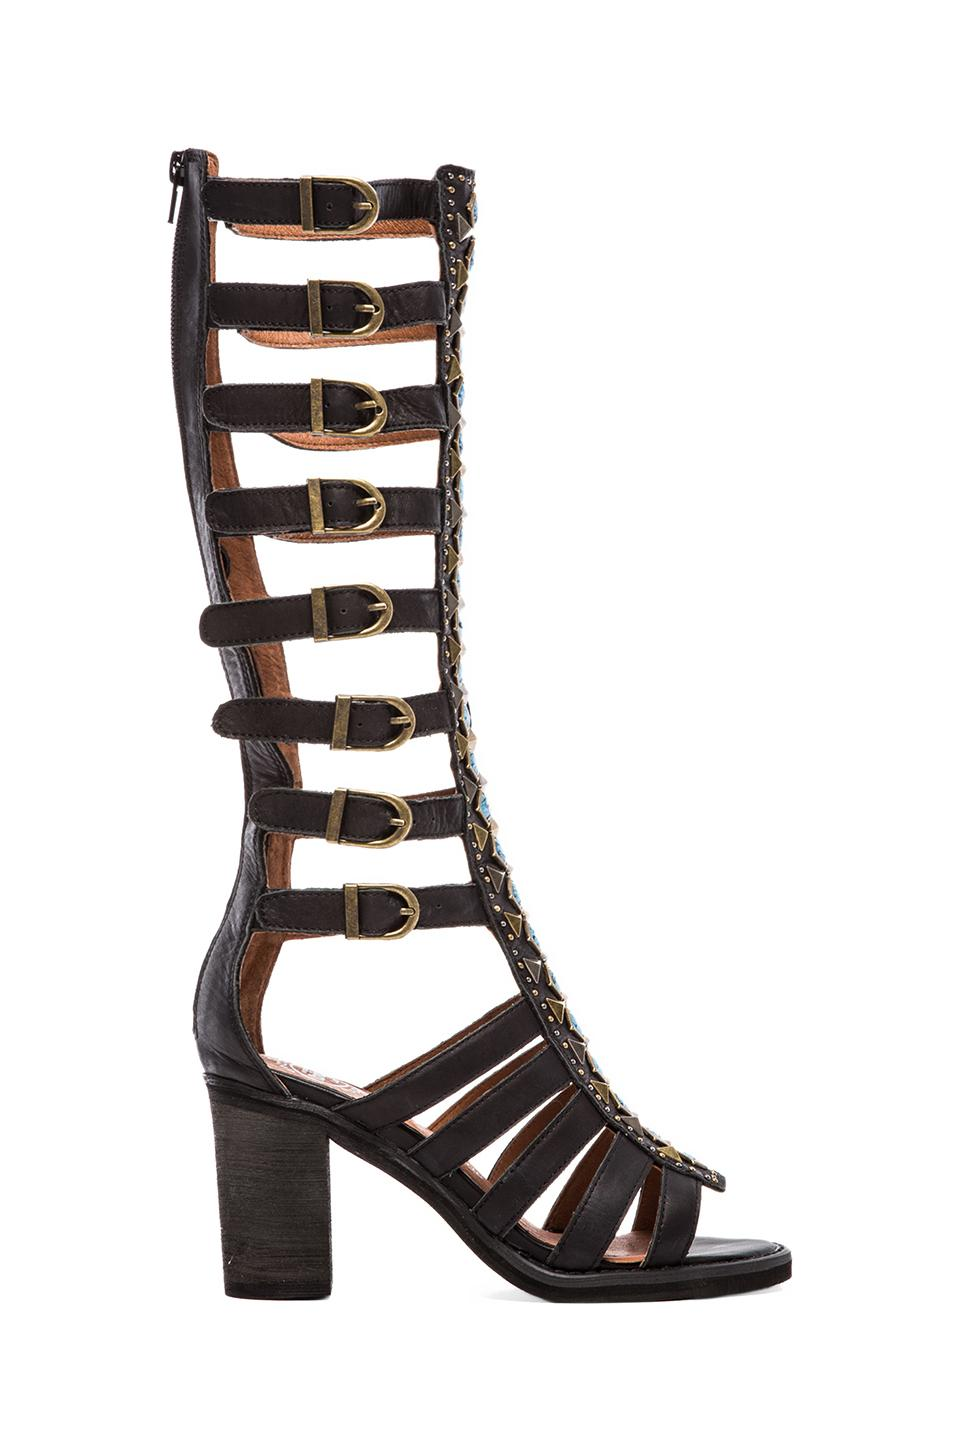 Jeffrey Campbell Badu Embellished Gladiator Sandal in Black